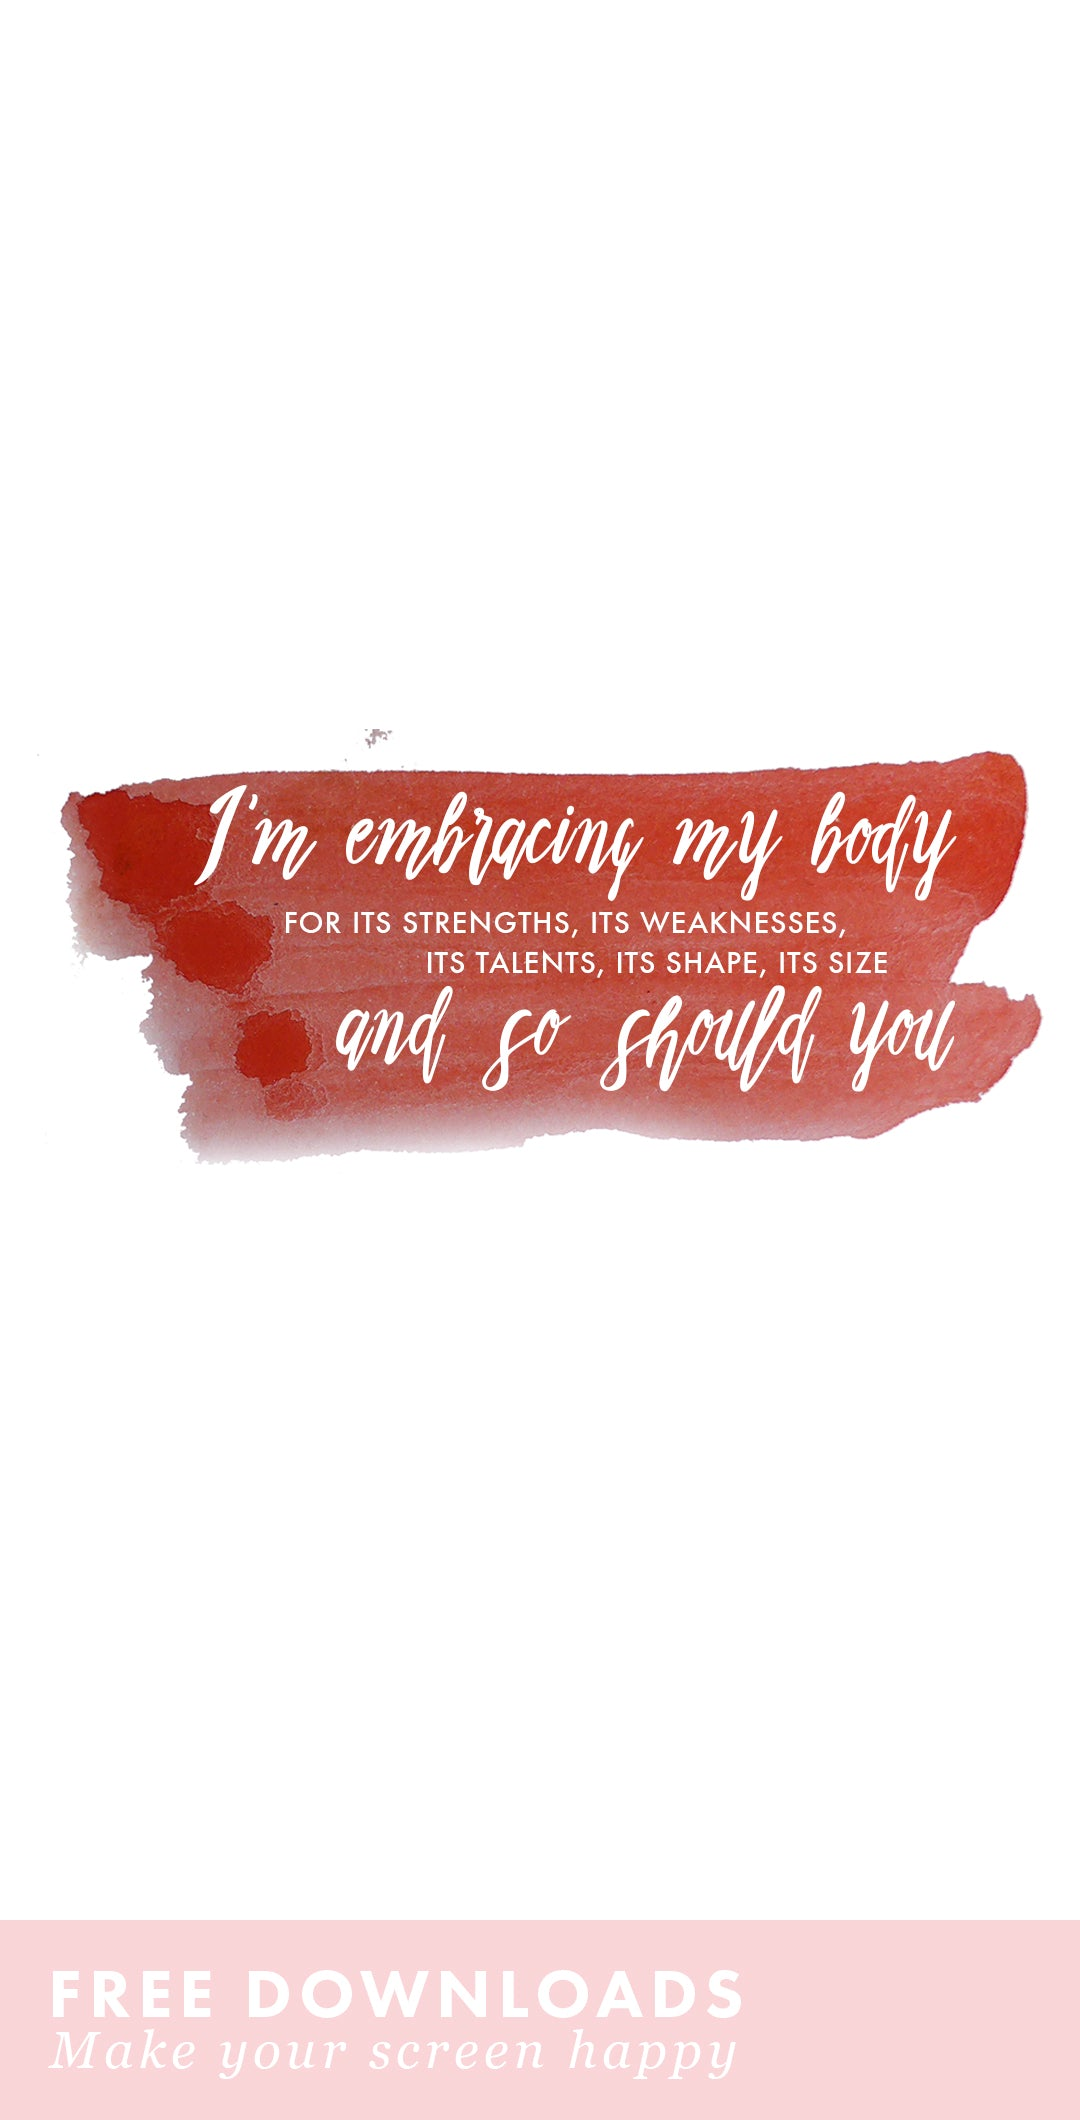 Beautiful quotes and free downloads on body positivity! Live empowered.